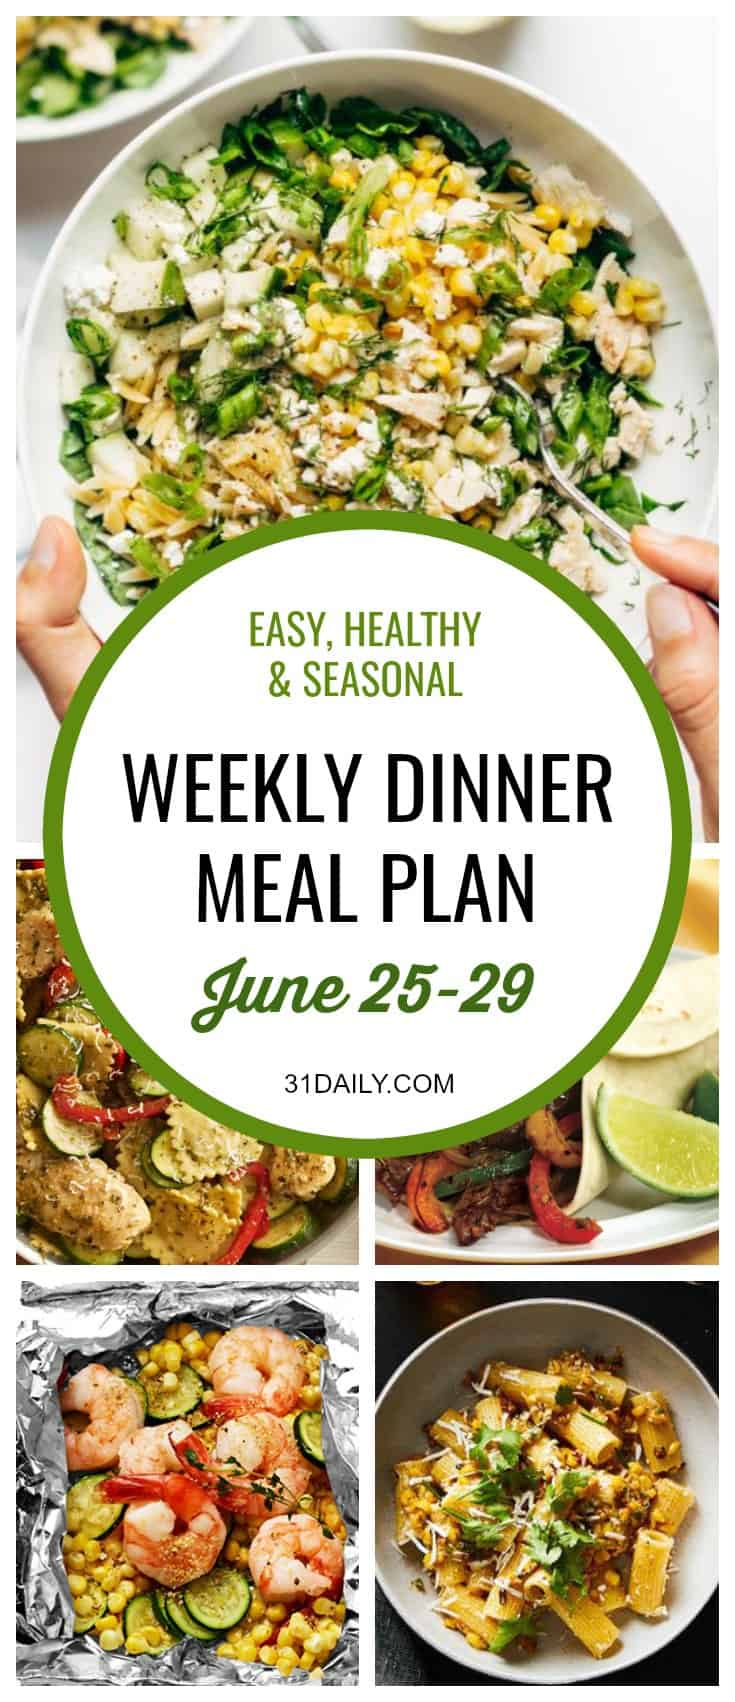 Weekly Dinner Meal Plan // Week 26 | 31Daily.com